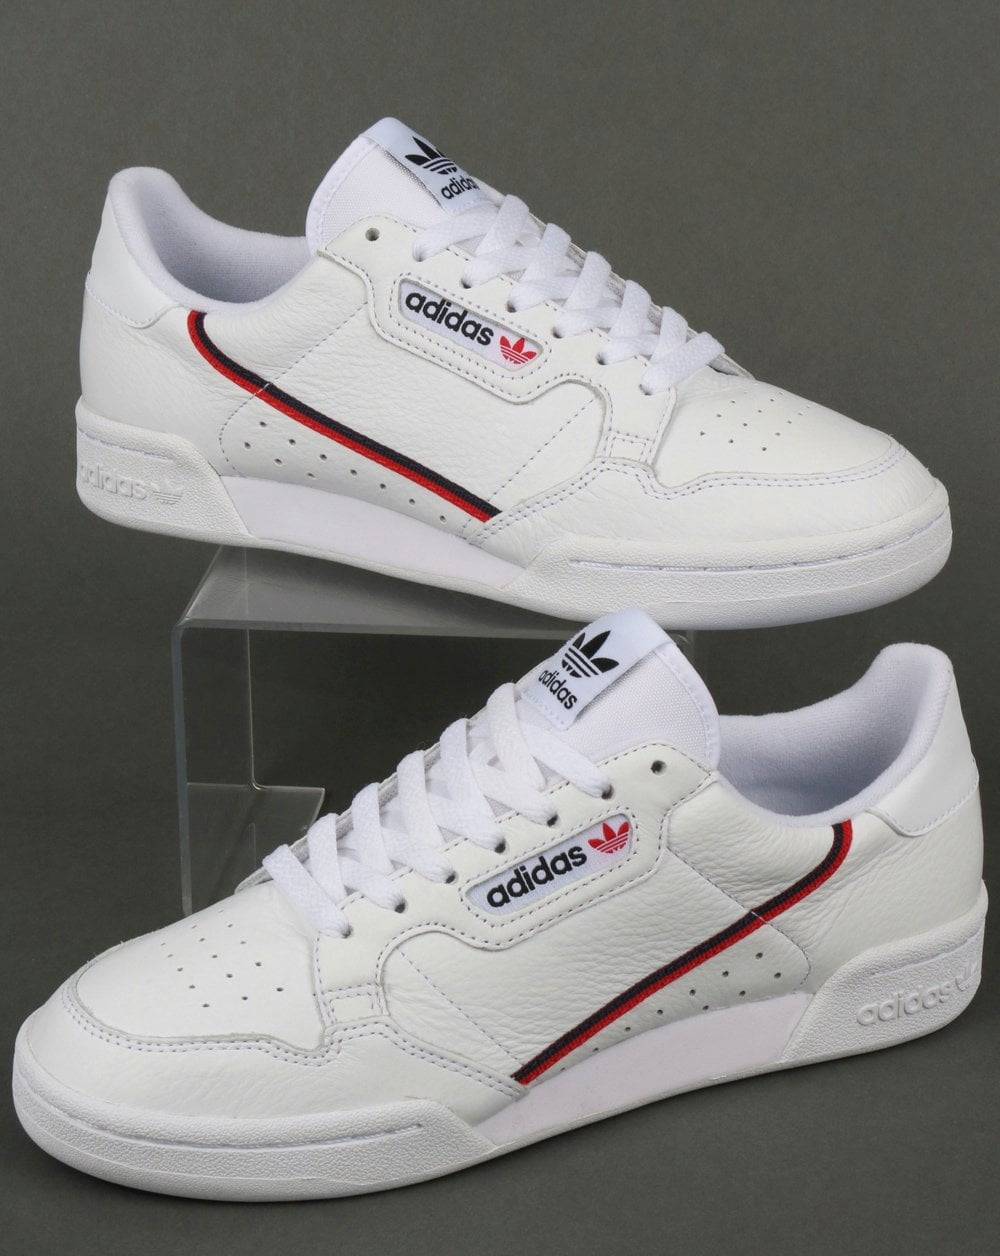 official photos 5c2f3 5d9ce adidas Trainers Adidas Continental 80 Trainers WhiteRedNavy